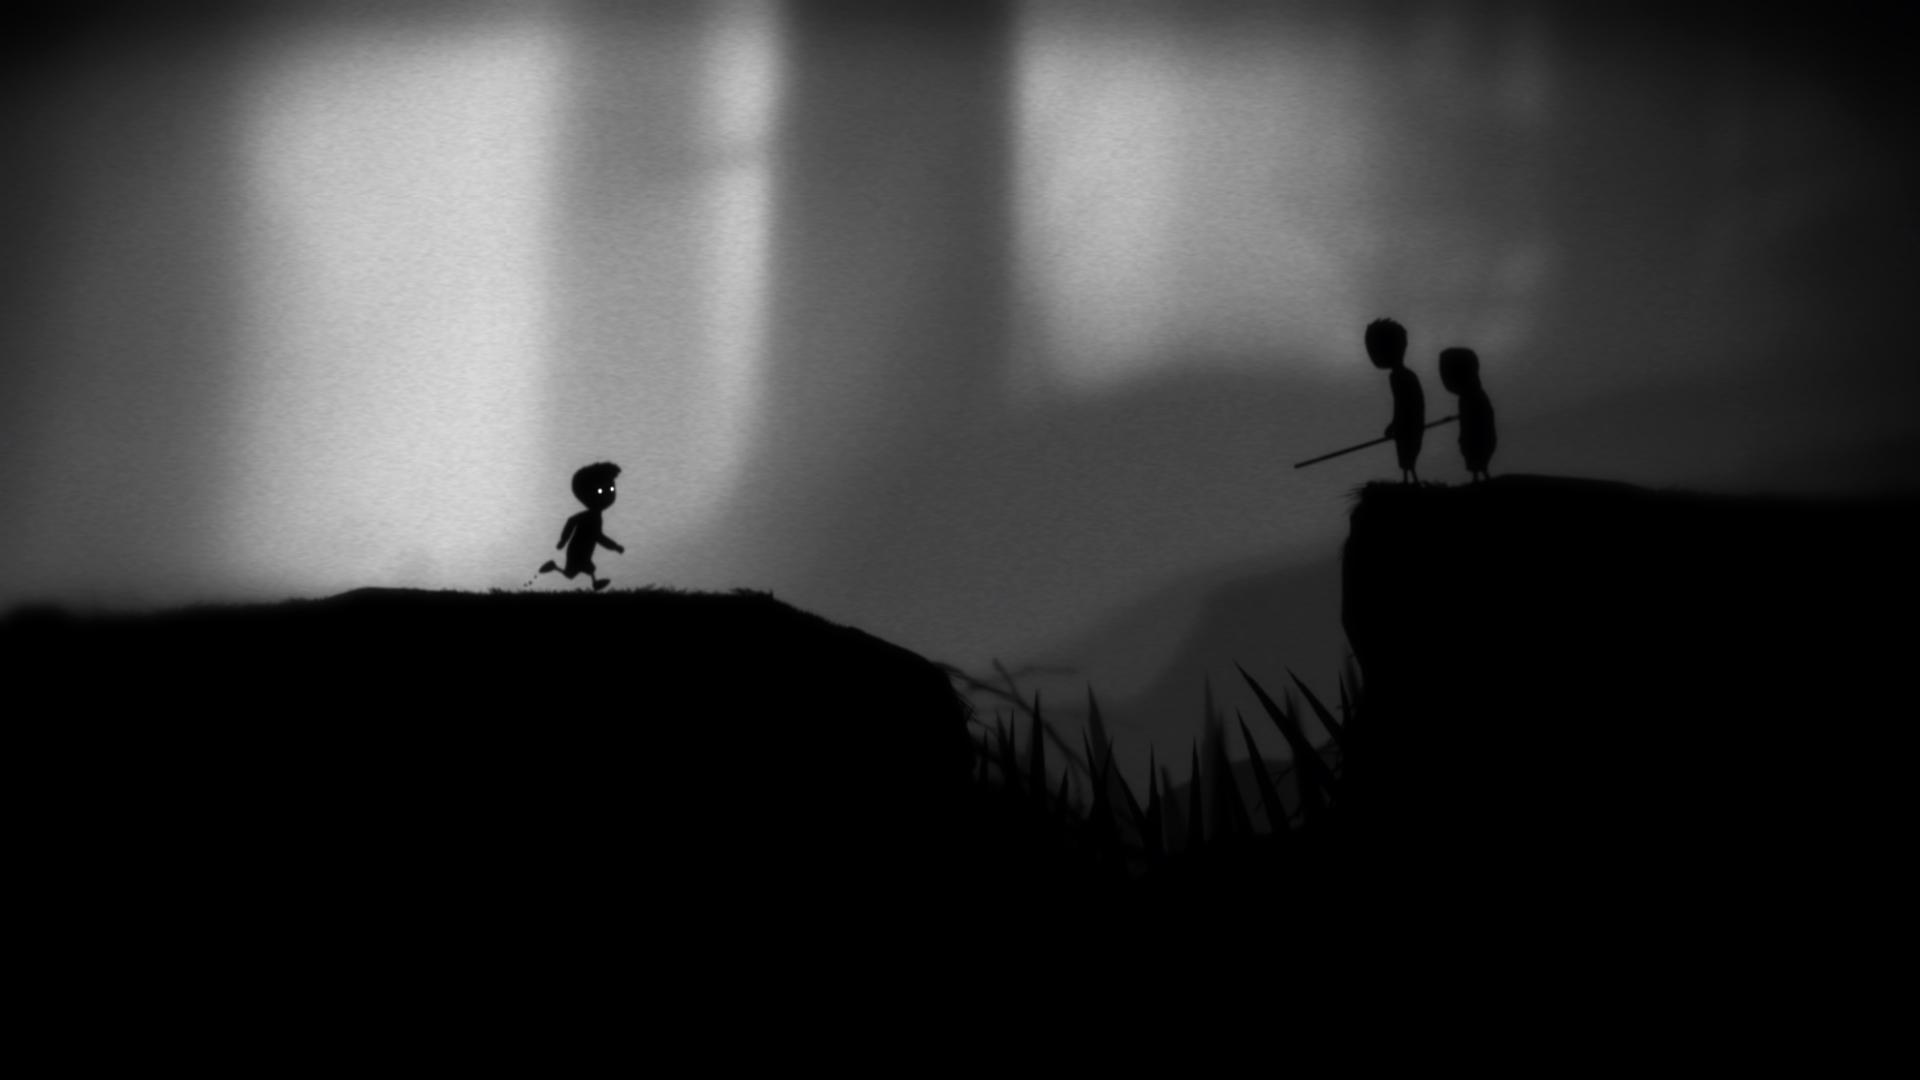 Limbo walkthrough and achievement guide | GamesRadar+